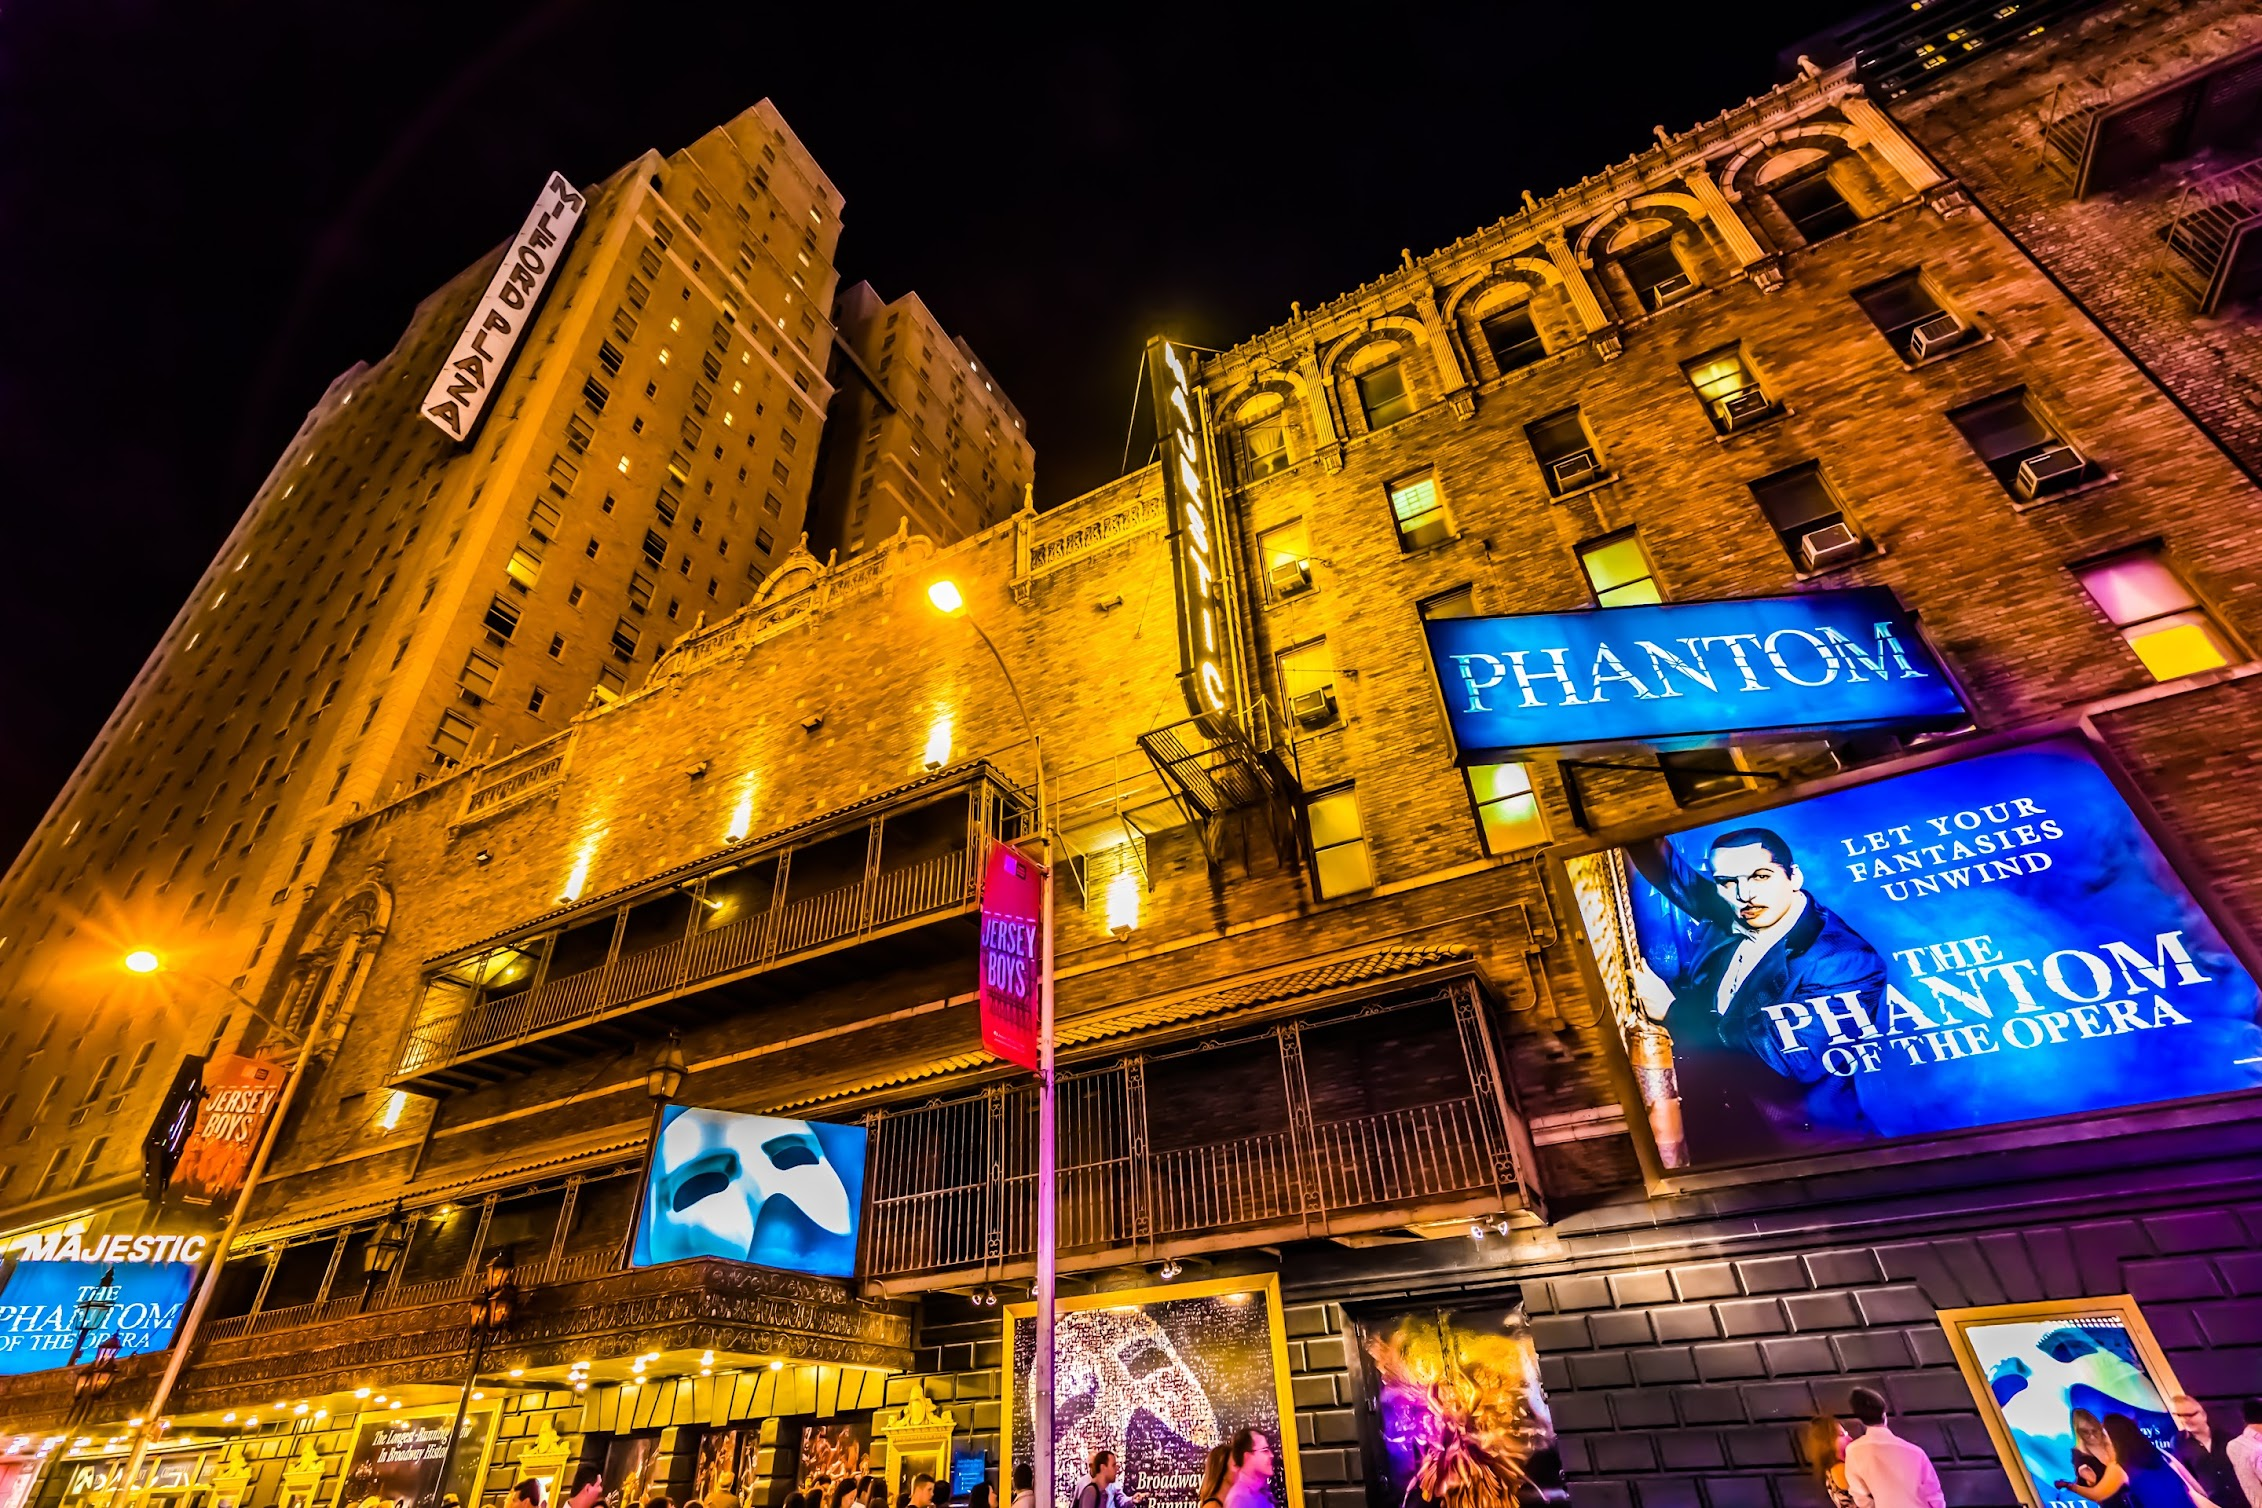 Broadway musical Phantom of the Opera Majestic Theatre2